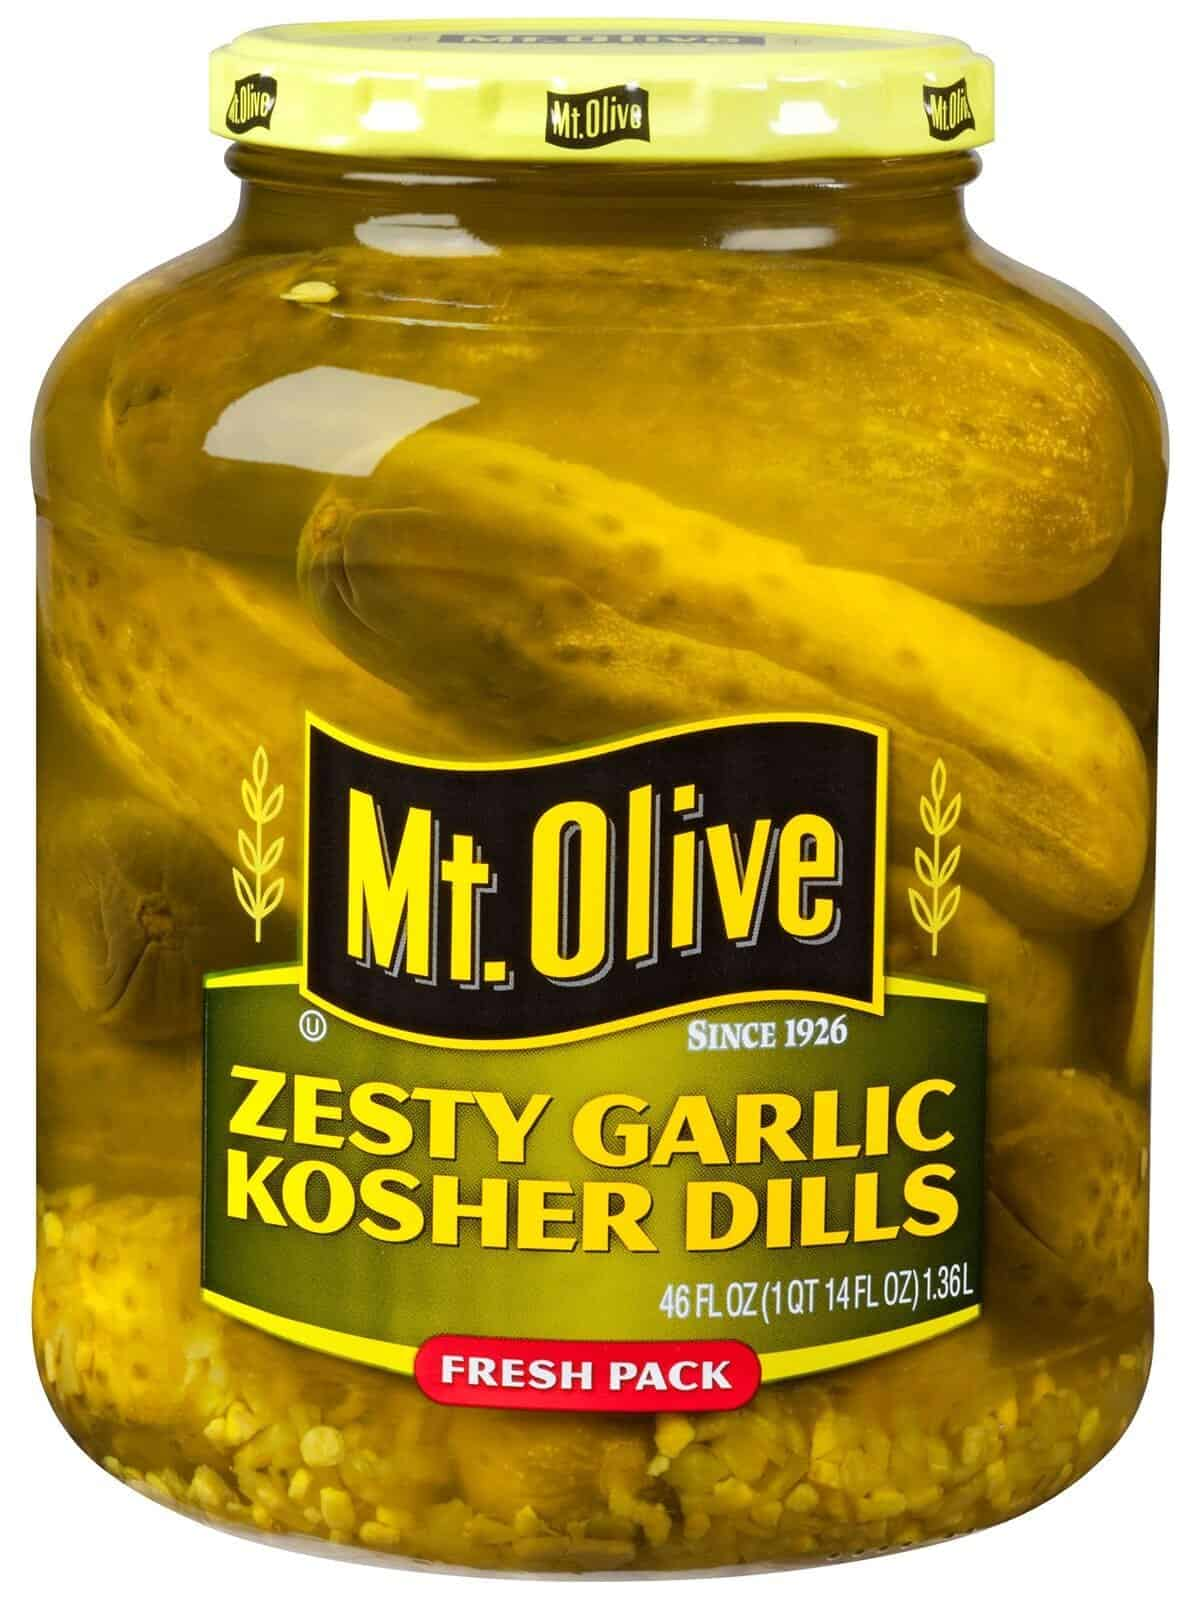 Zesty Garlic Kosher Dills